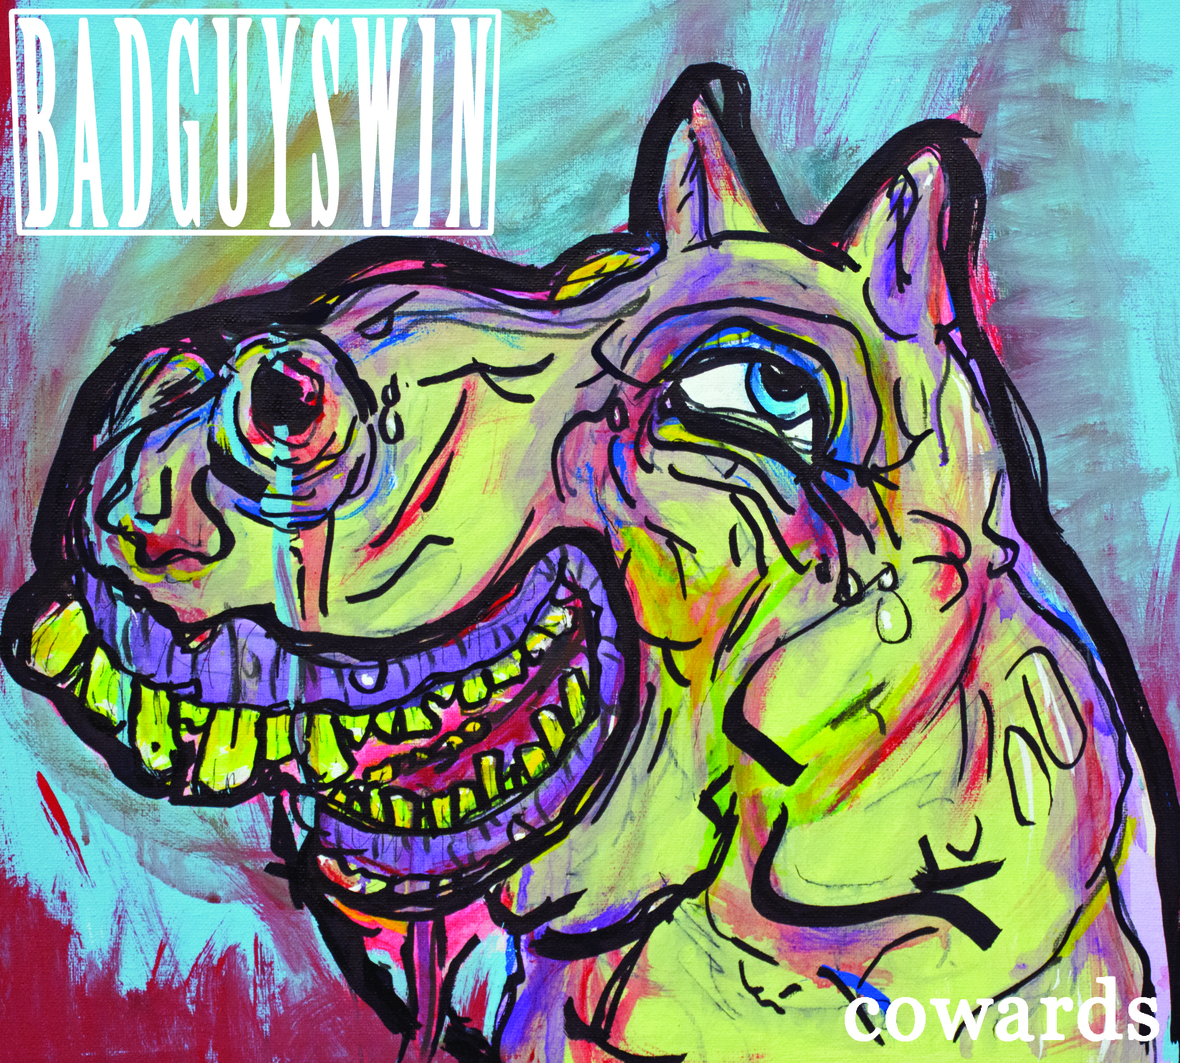 bgw-cowards-albumcover